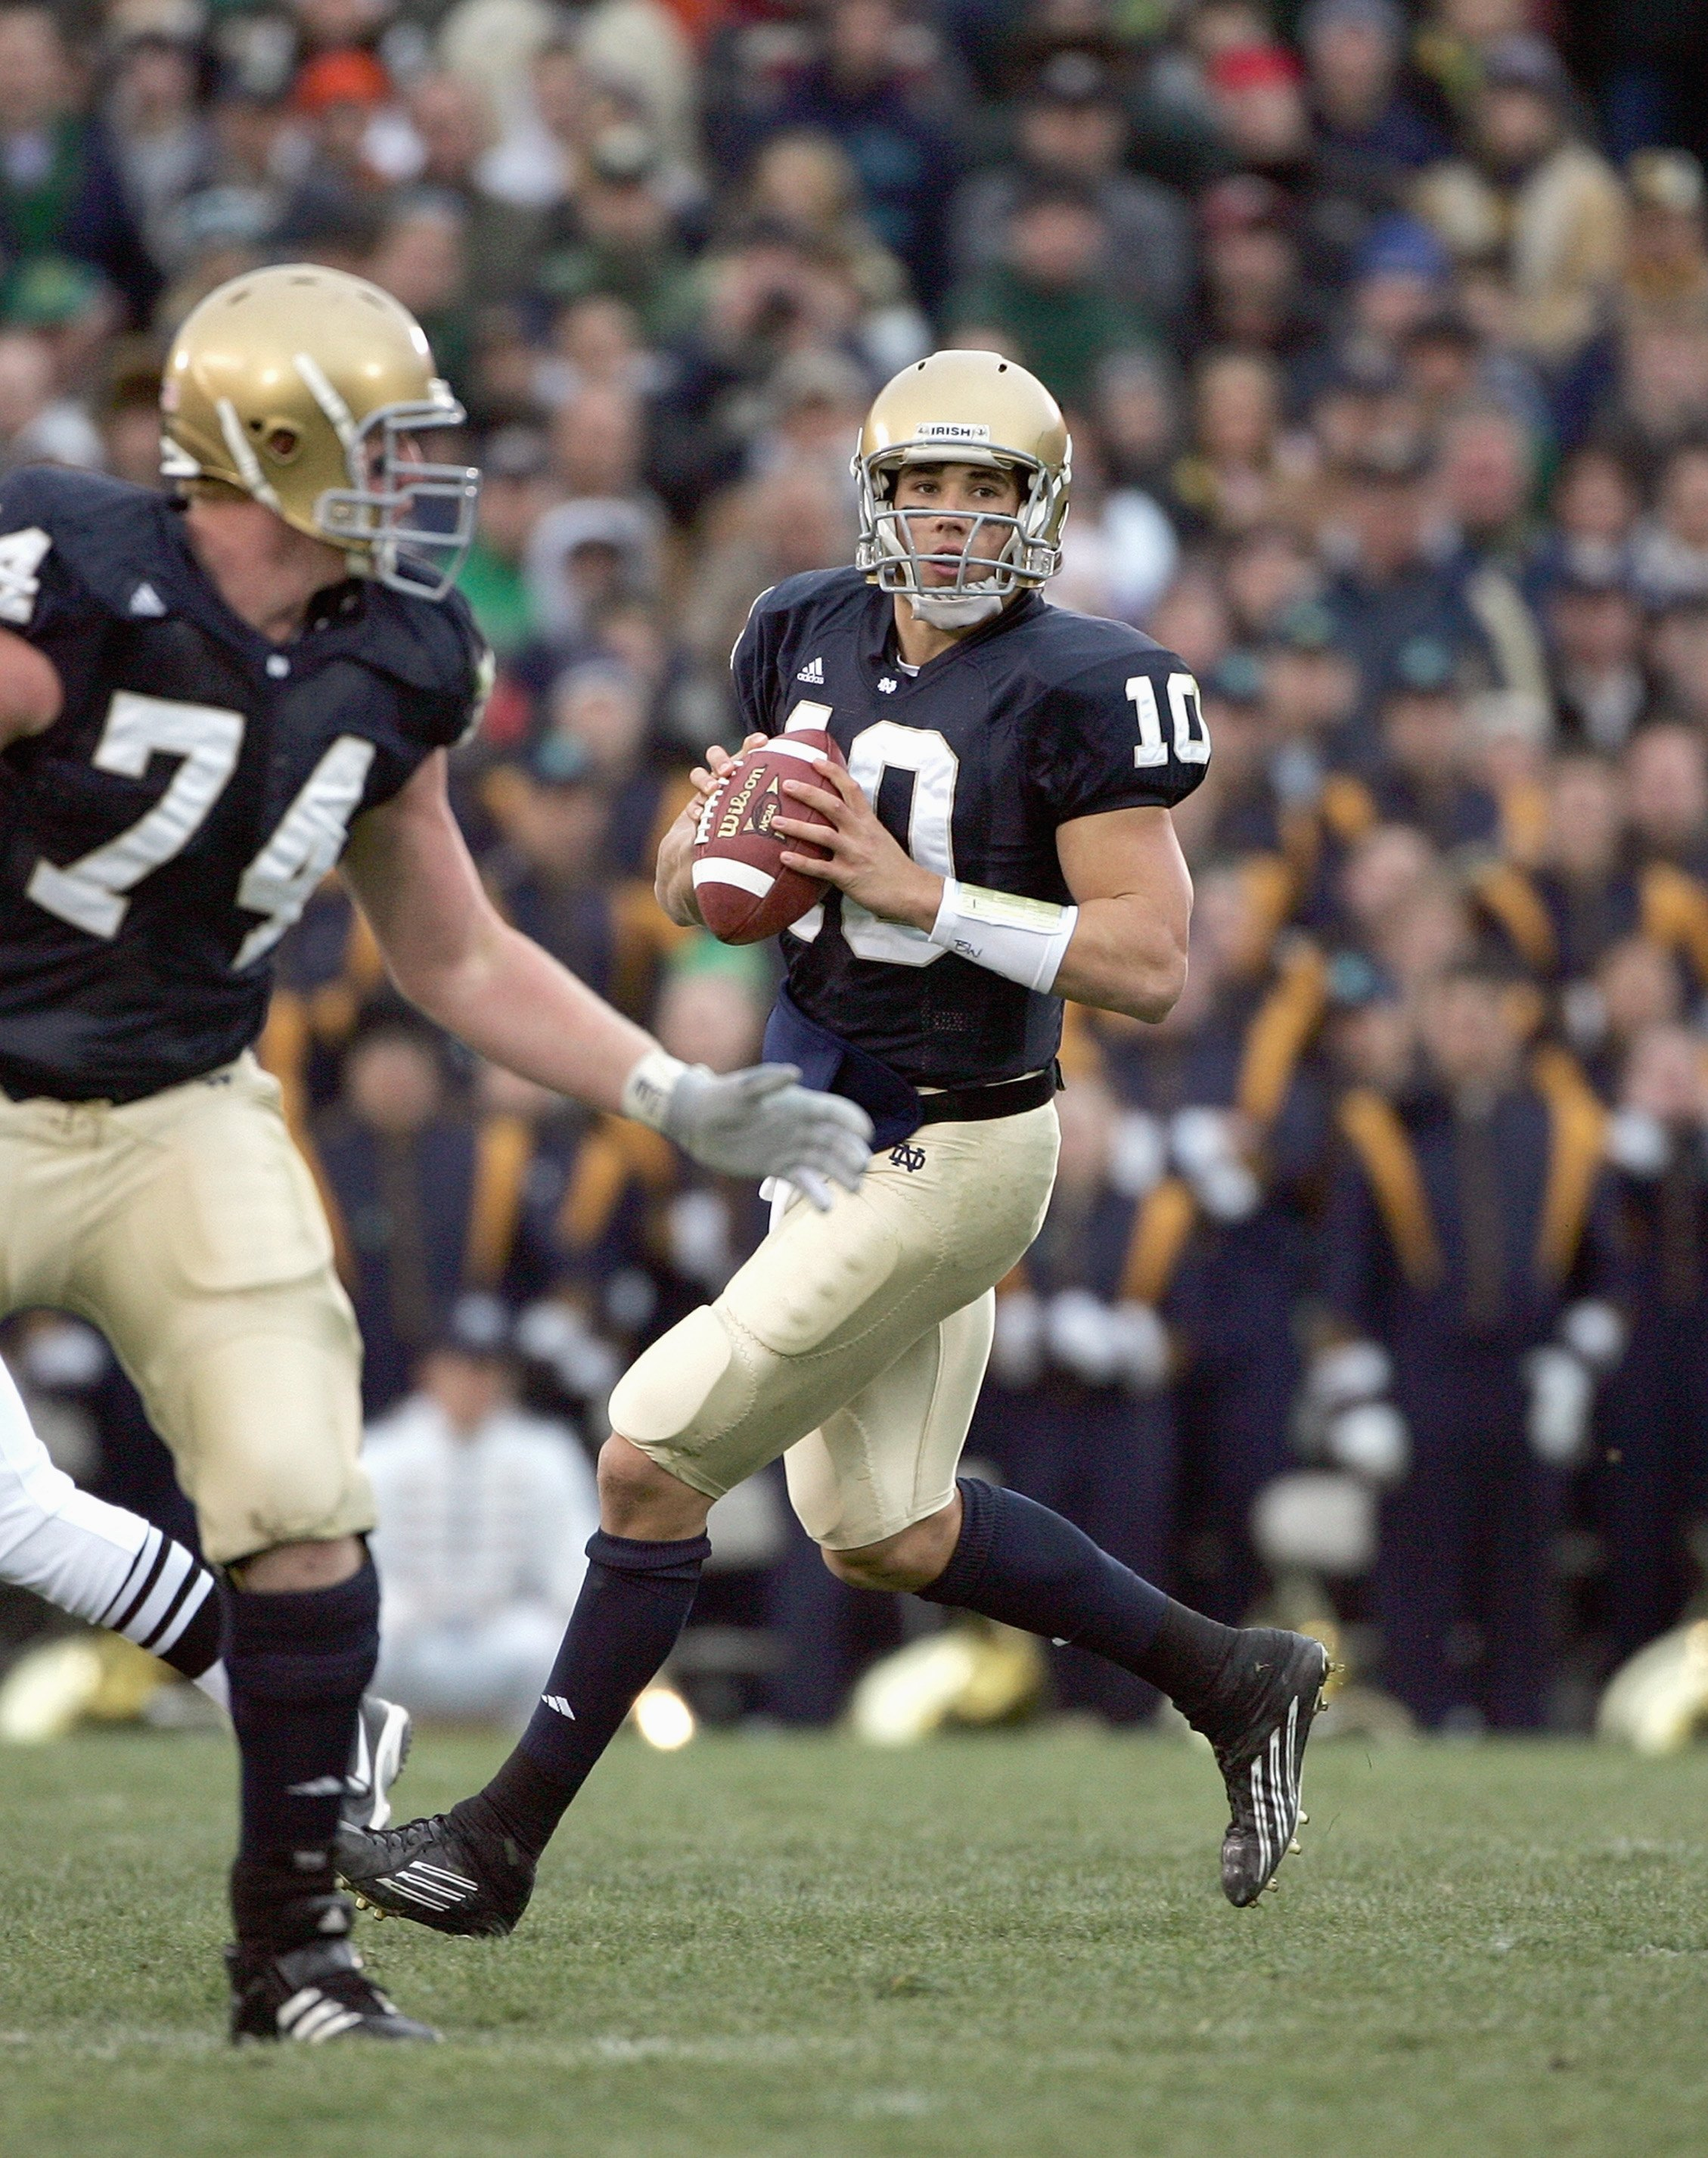 Notre Dame Football Ranking The 25 Most Beloved Figures In Irish History Bleacher Report Latest News Videos And Highlights